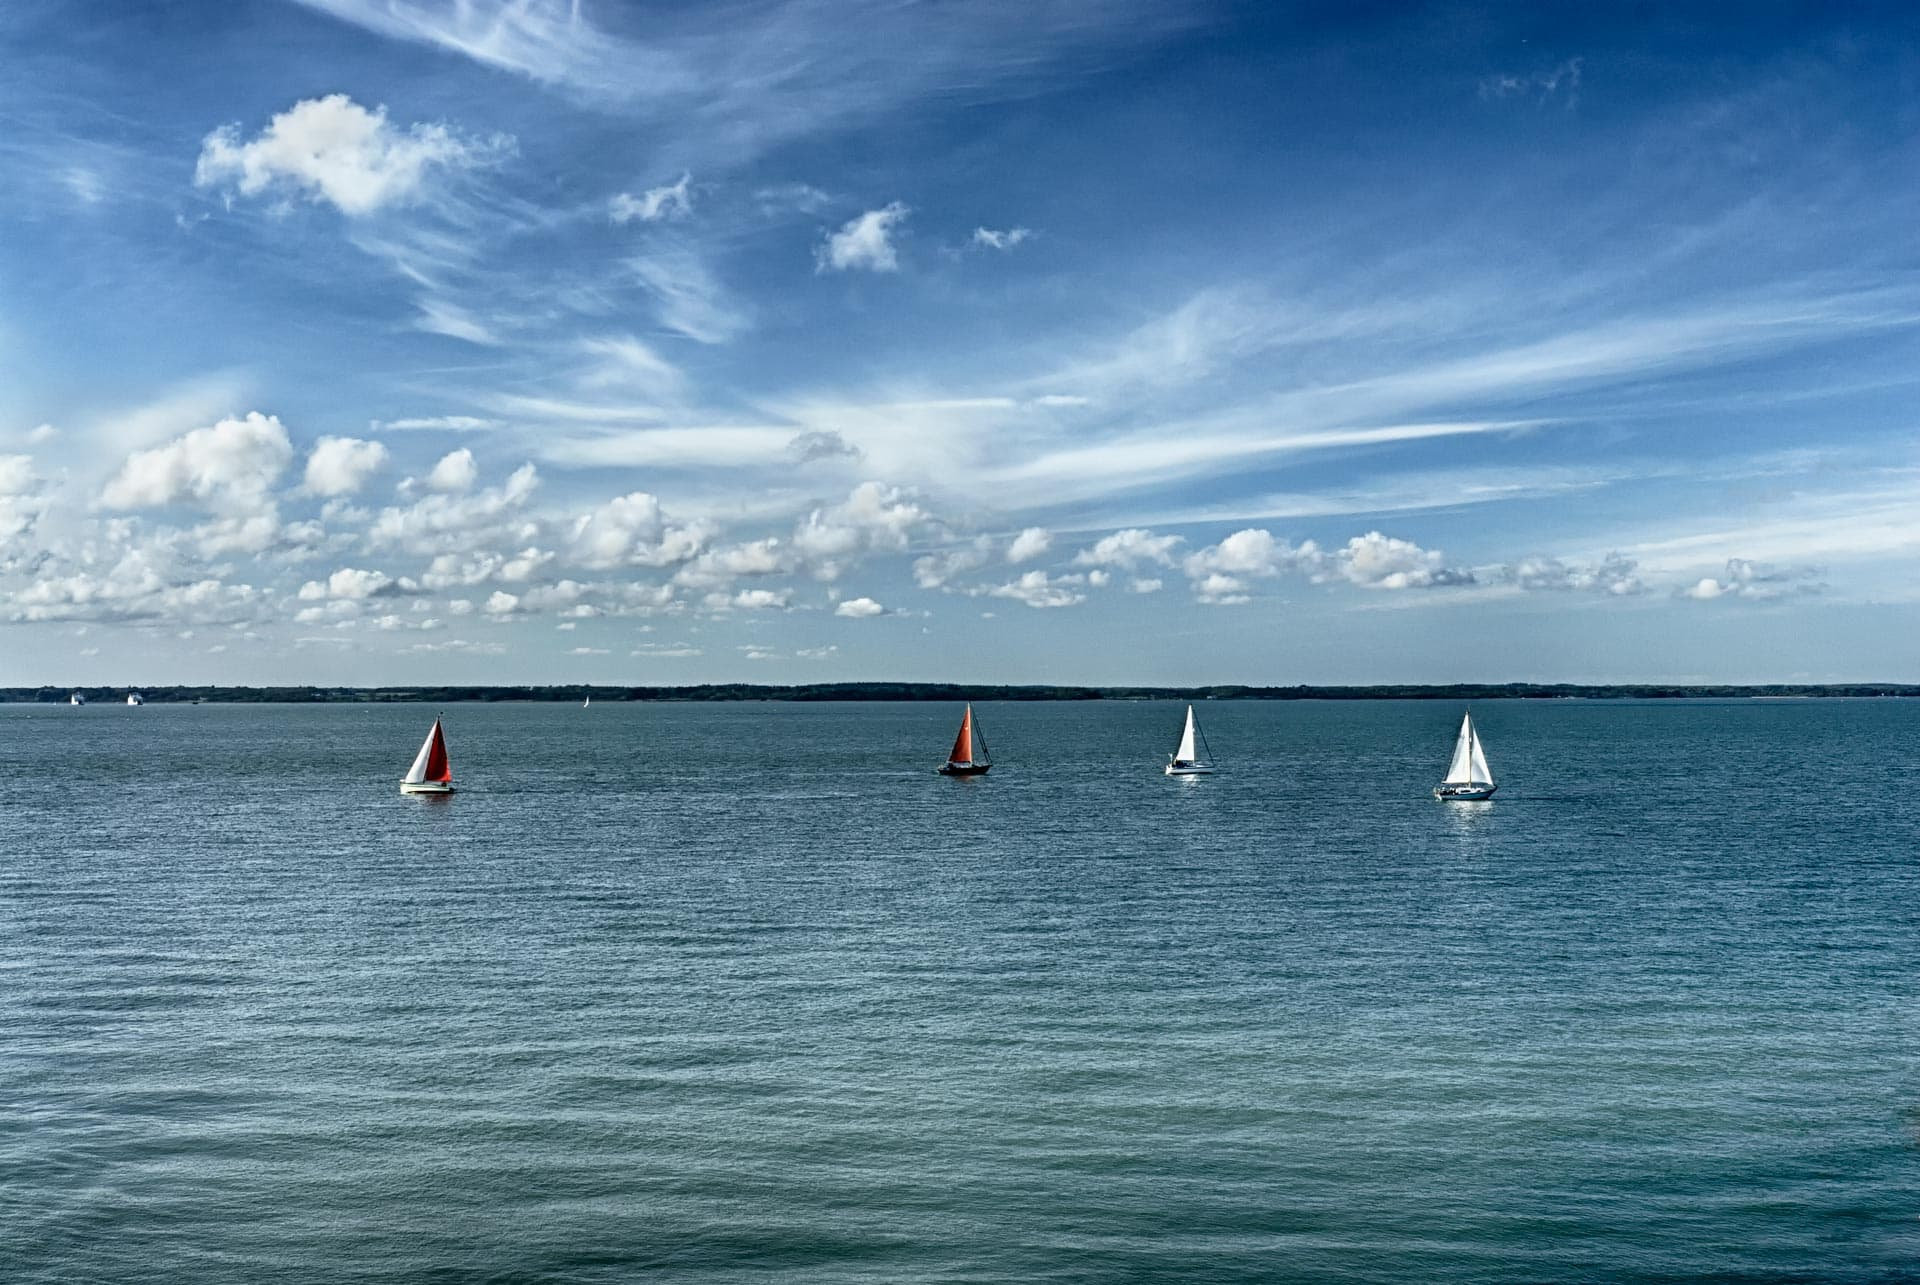 Yachts off the coast at Cowes, Isle of Wight, England, UK